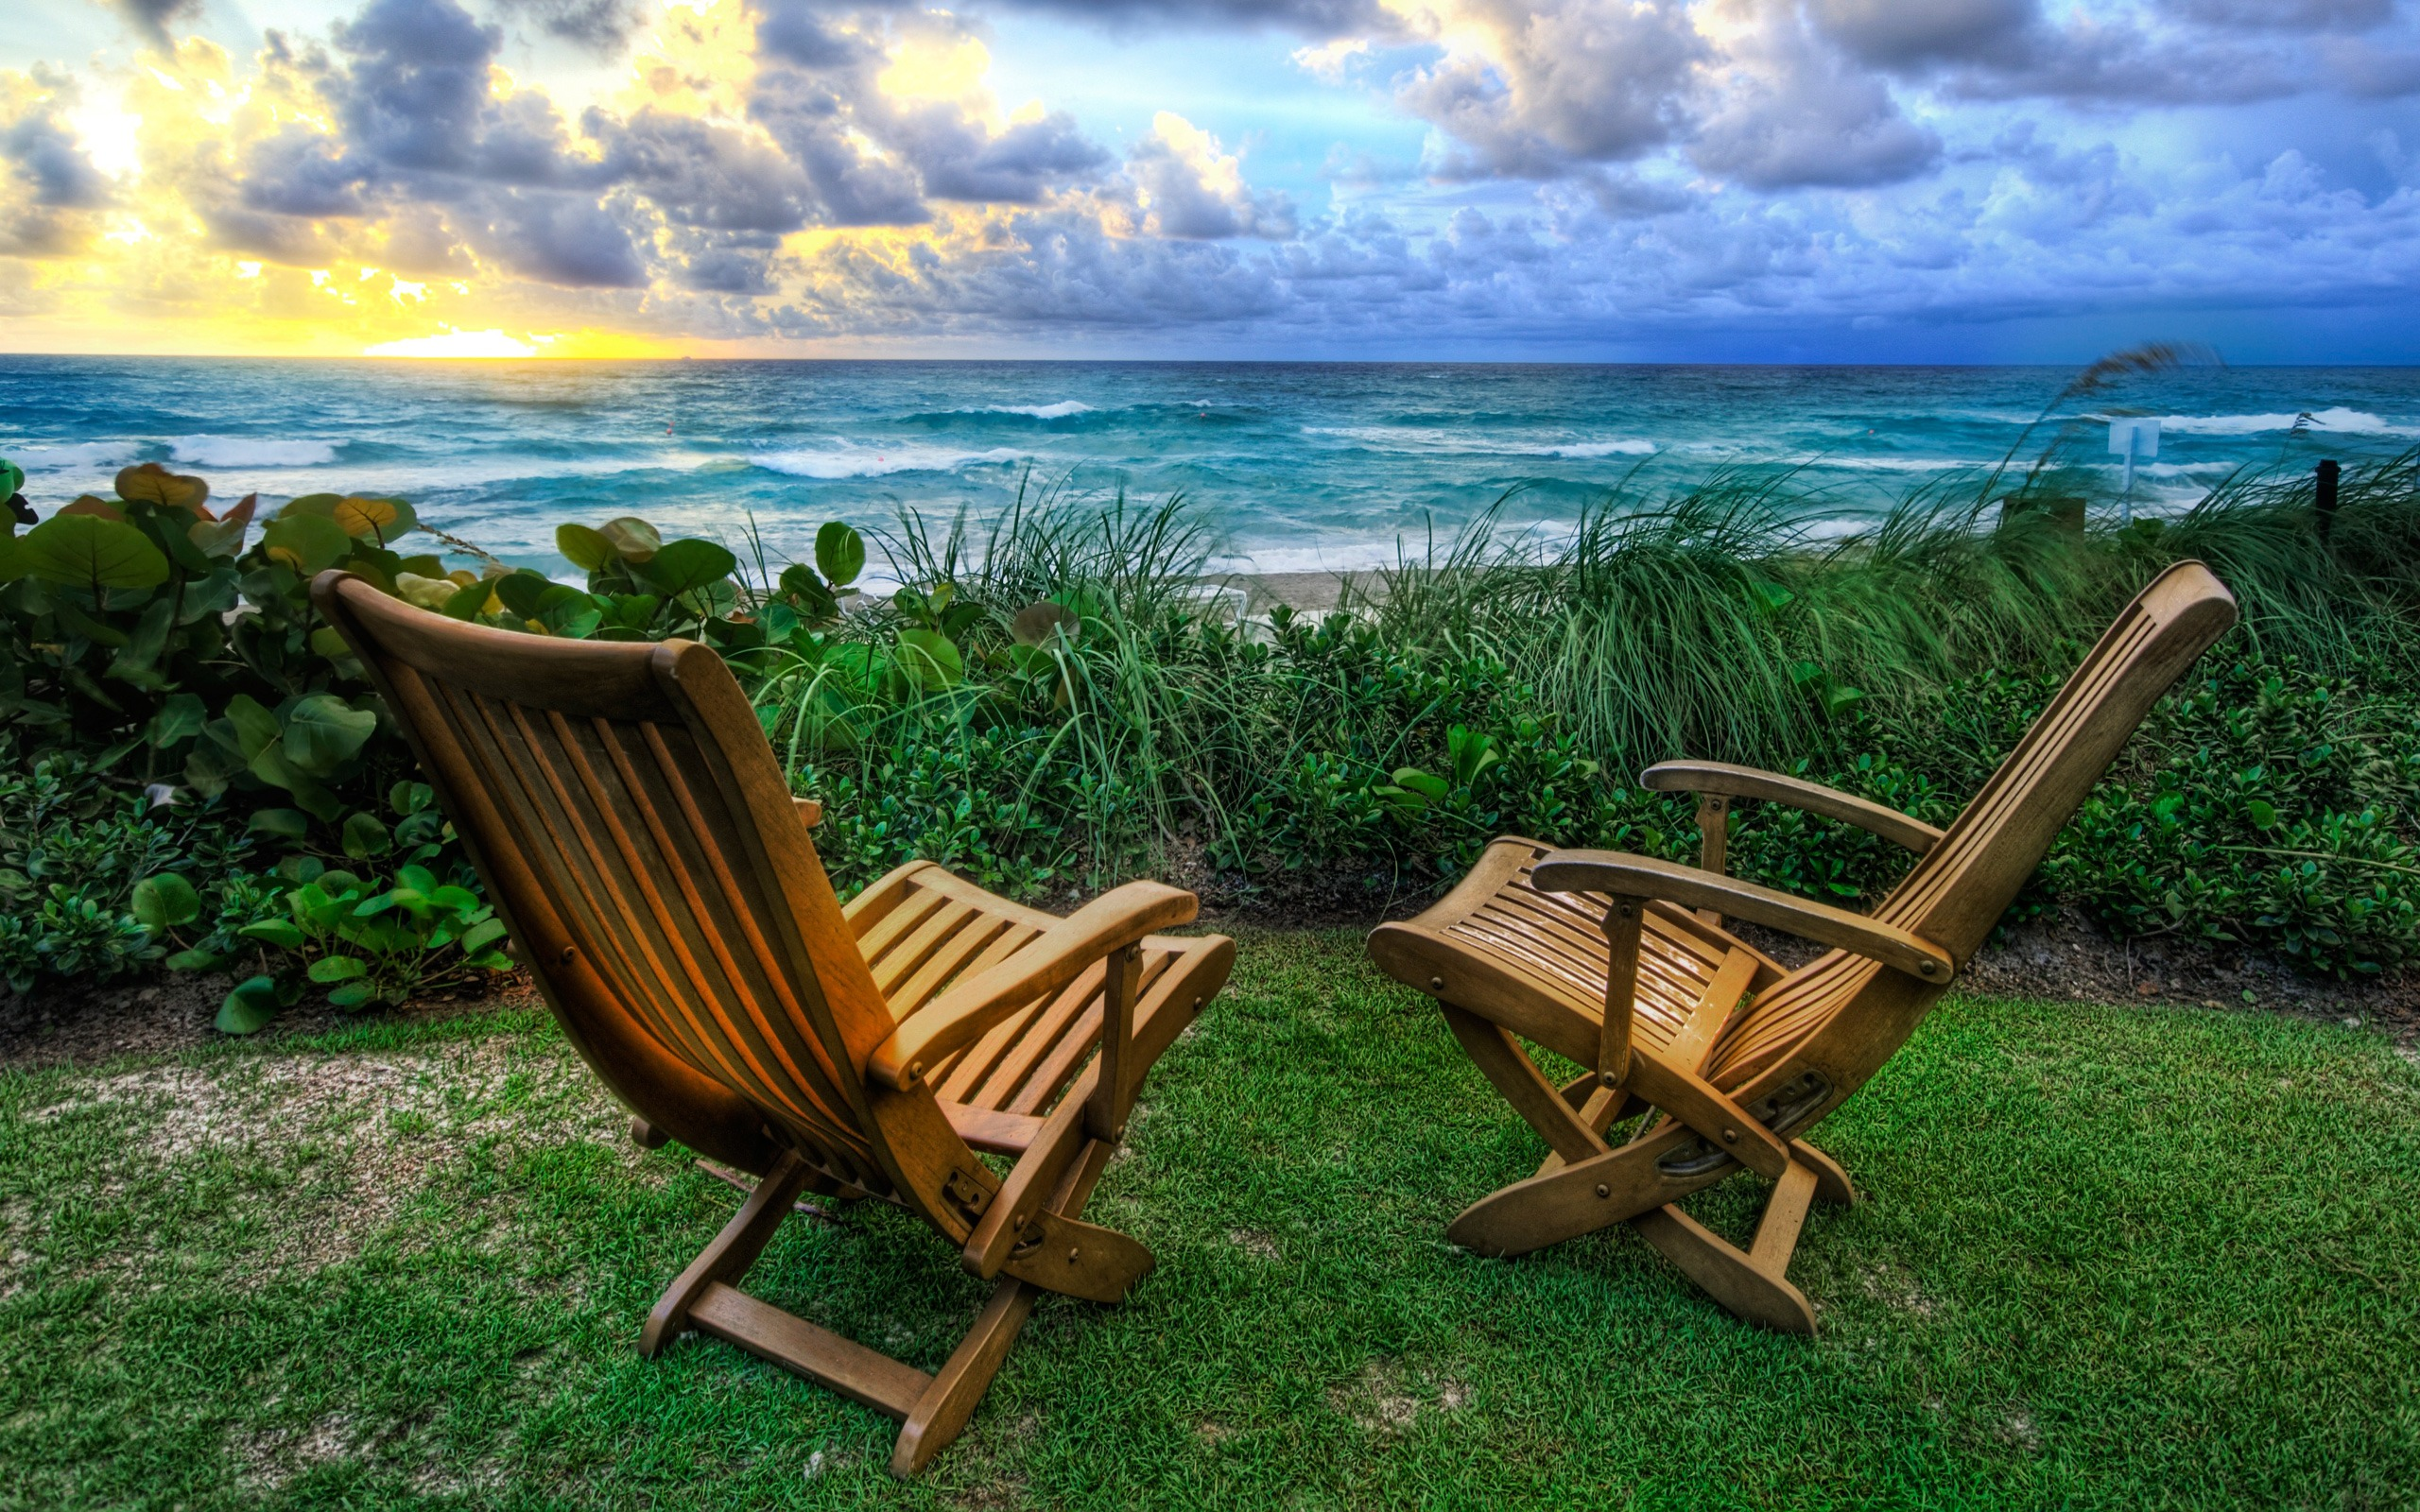 Beach Chairs Wallpaper High Dynamic Range Nature Wallpapers In Jpg